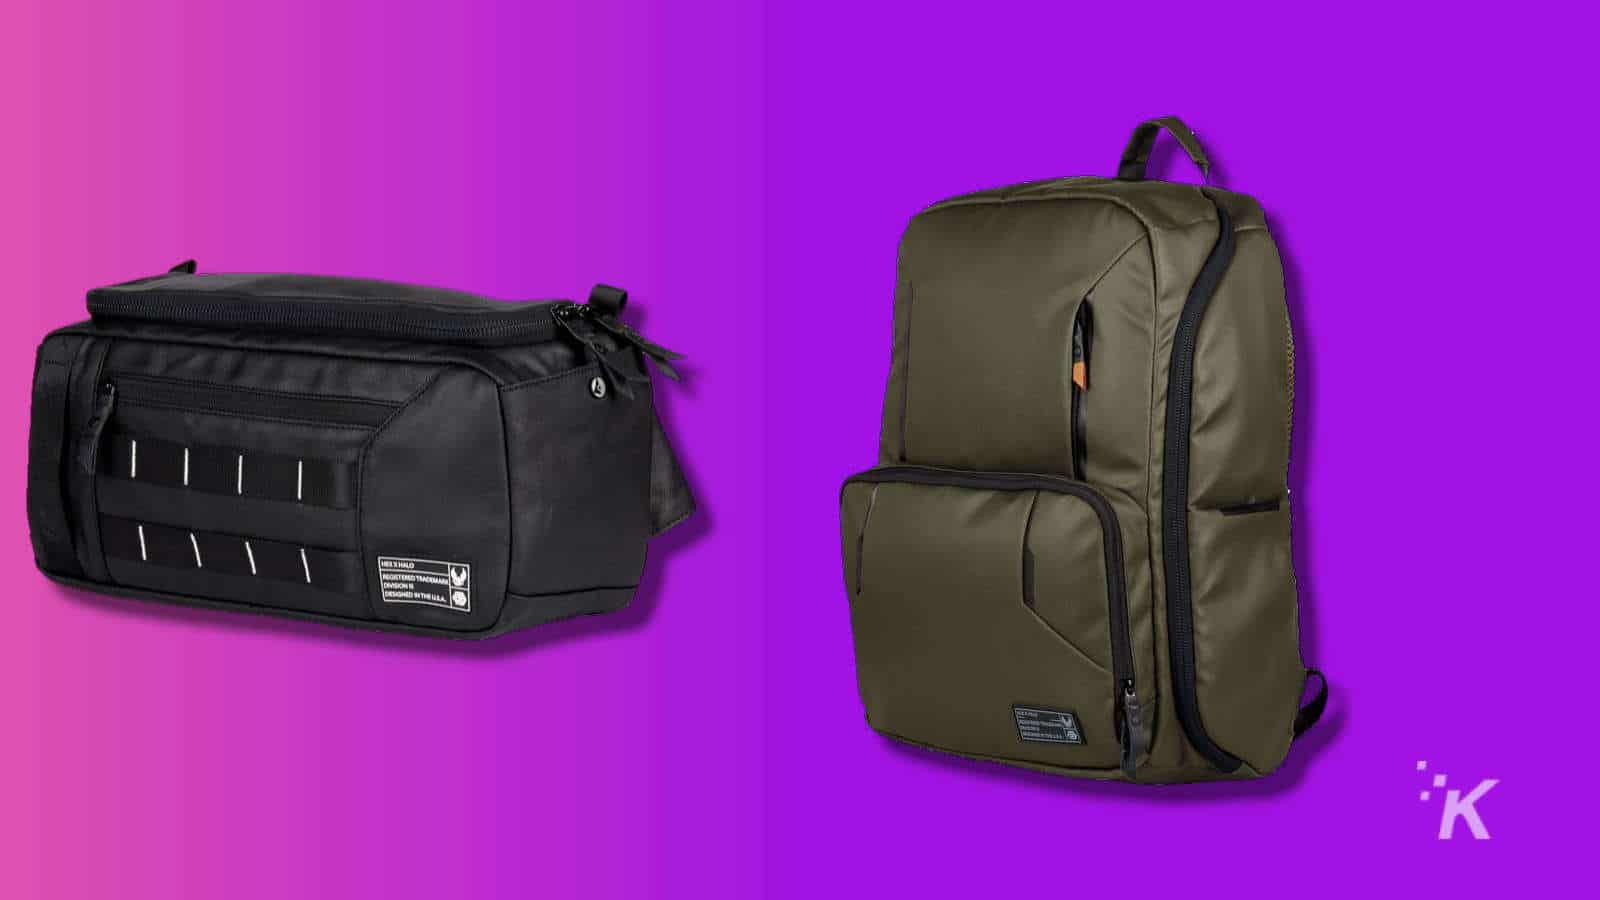 hexbrand halo camera bags